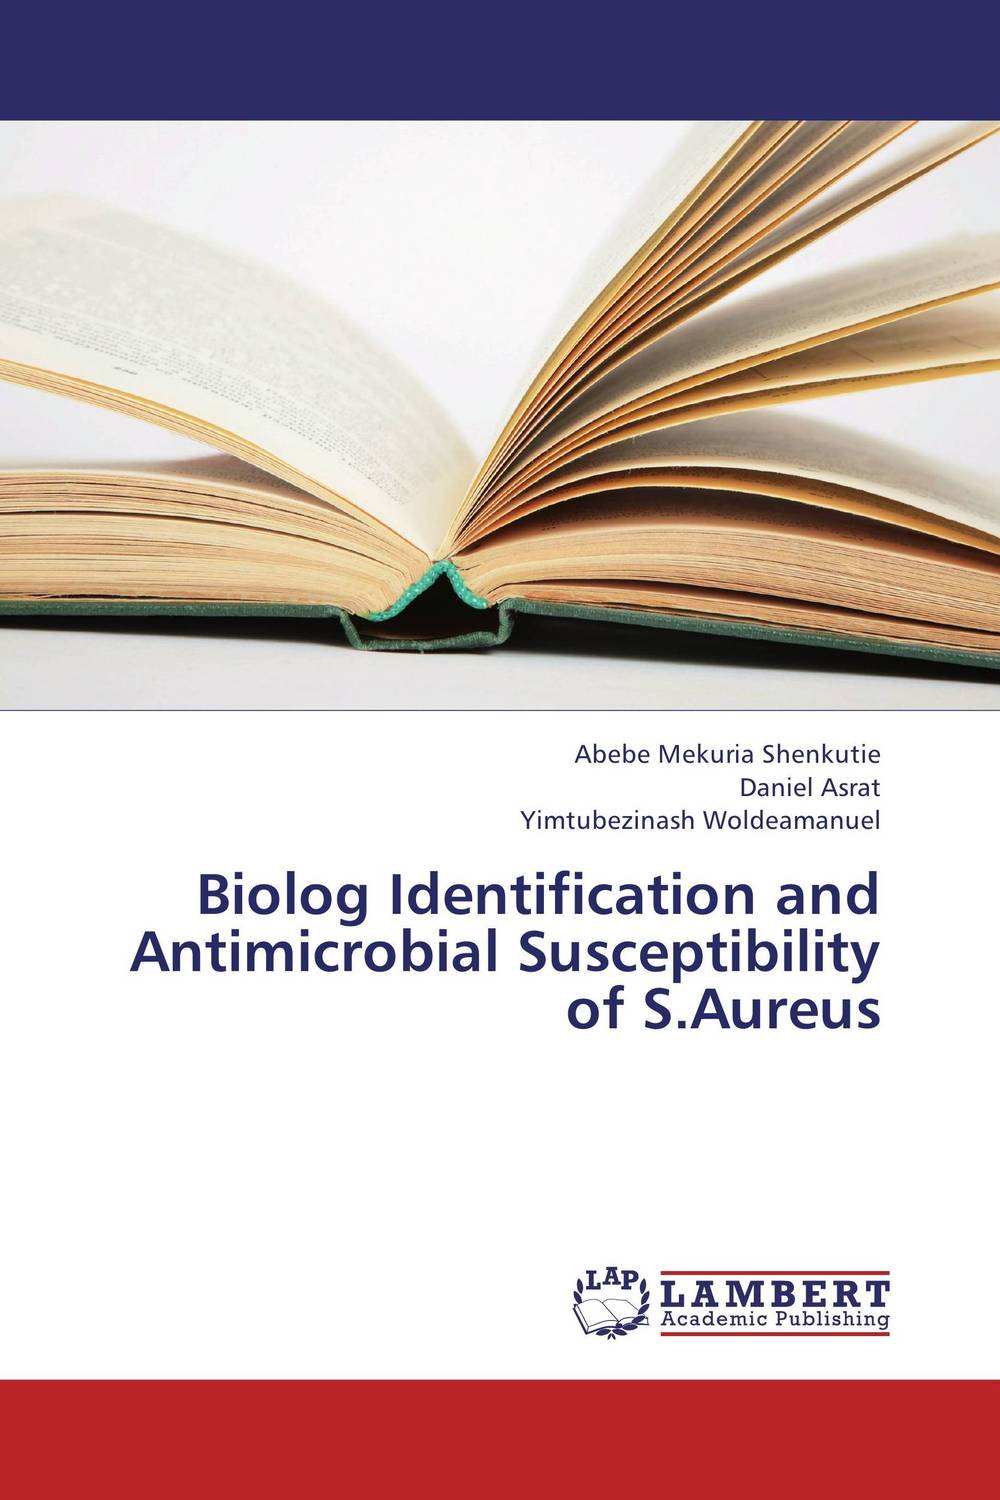 Biolog Identification and Antimicrobial Susceptibility of S.Aureus nidhi gondaliya and sweta patel methicilin resistance staphylococcus aureus skin